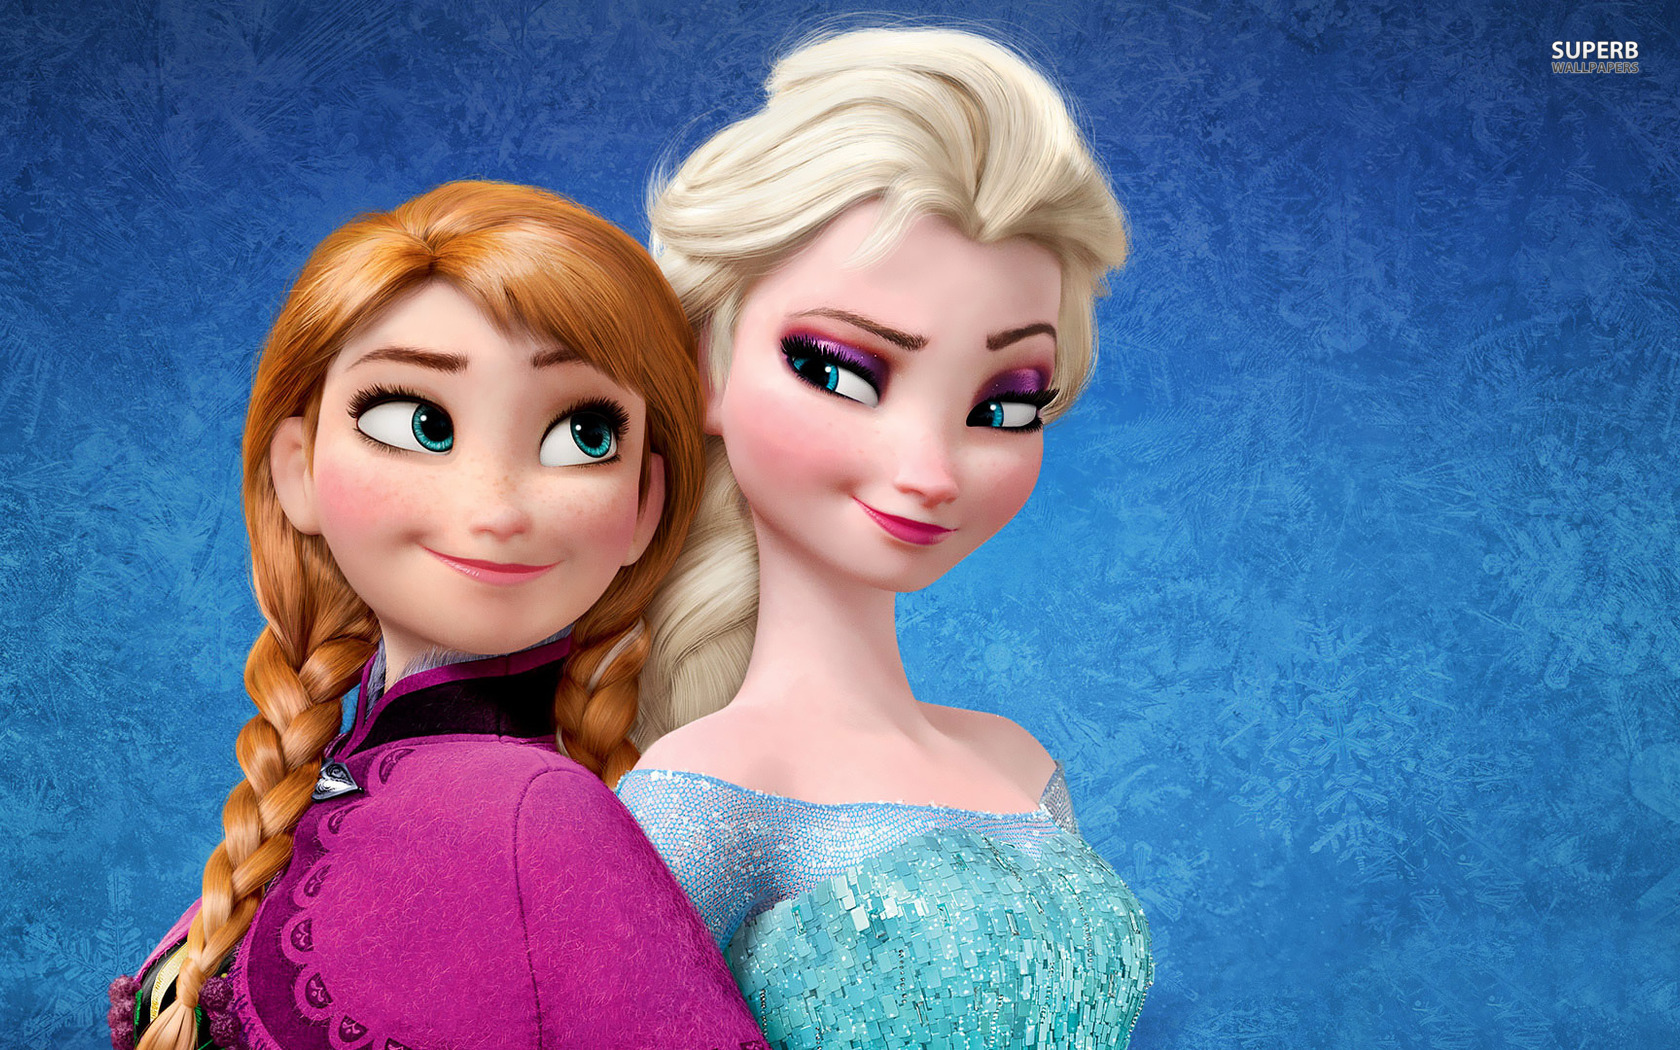 Frozen Fever-PROMO PHOTOS-05SETEMBRO2014